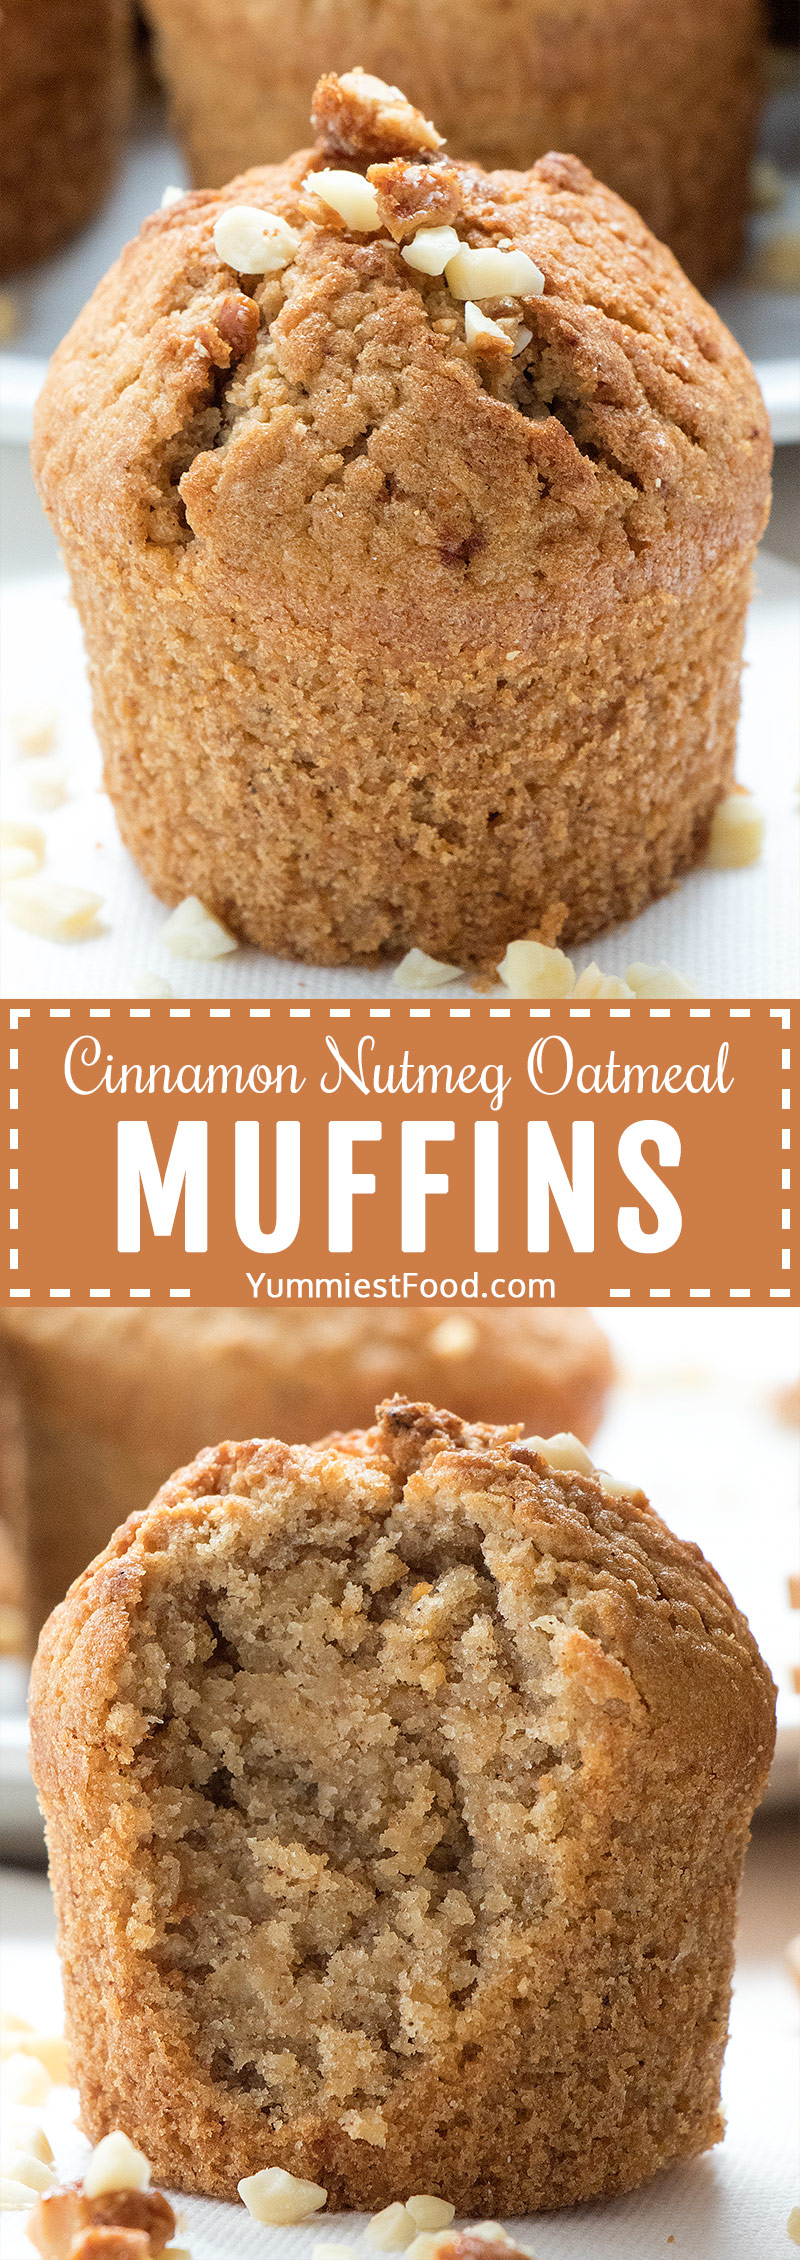 Cinnamon Nutmeg Oatmeal Muffins - easy and healthy recipe using oats